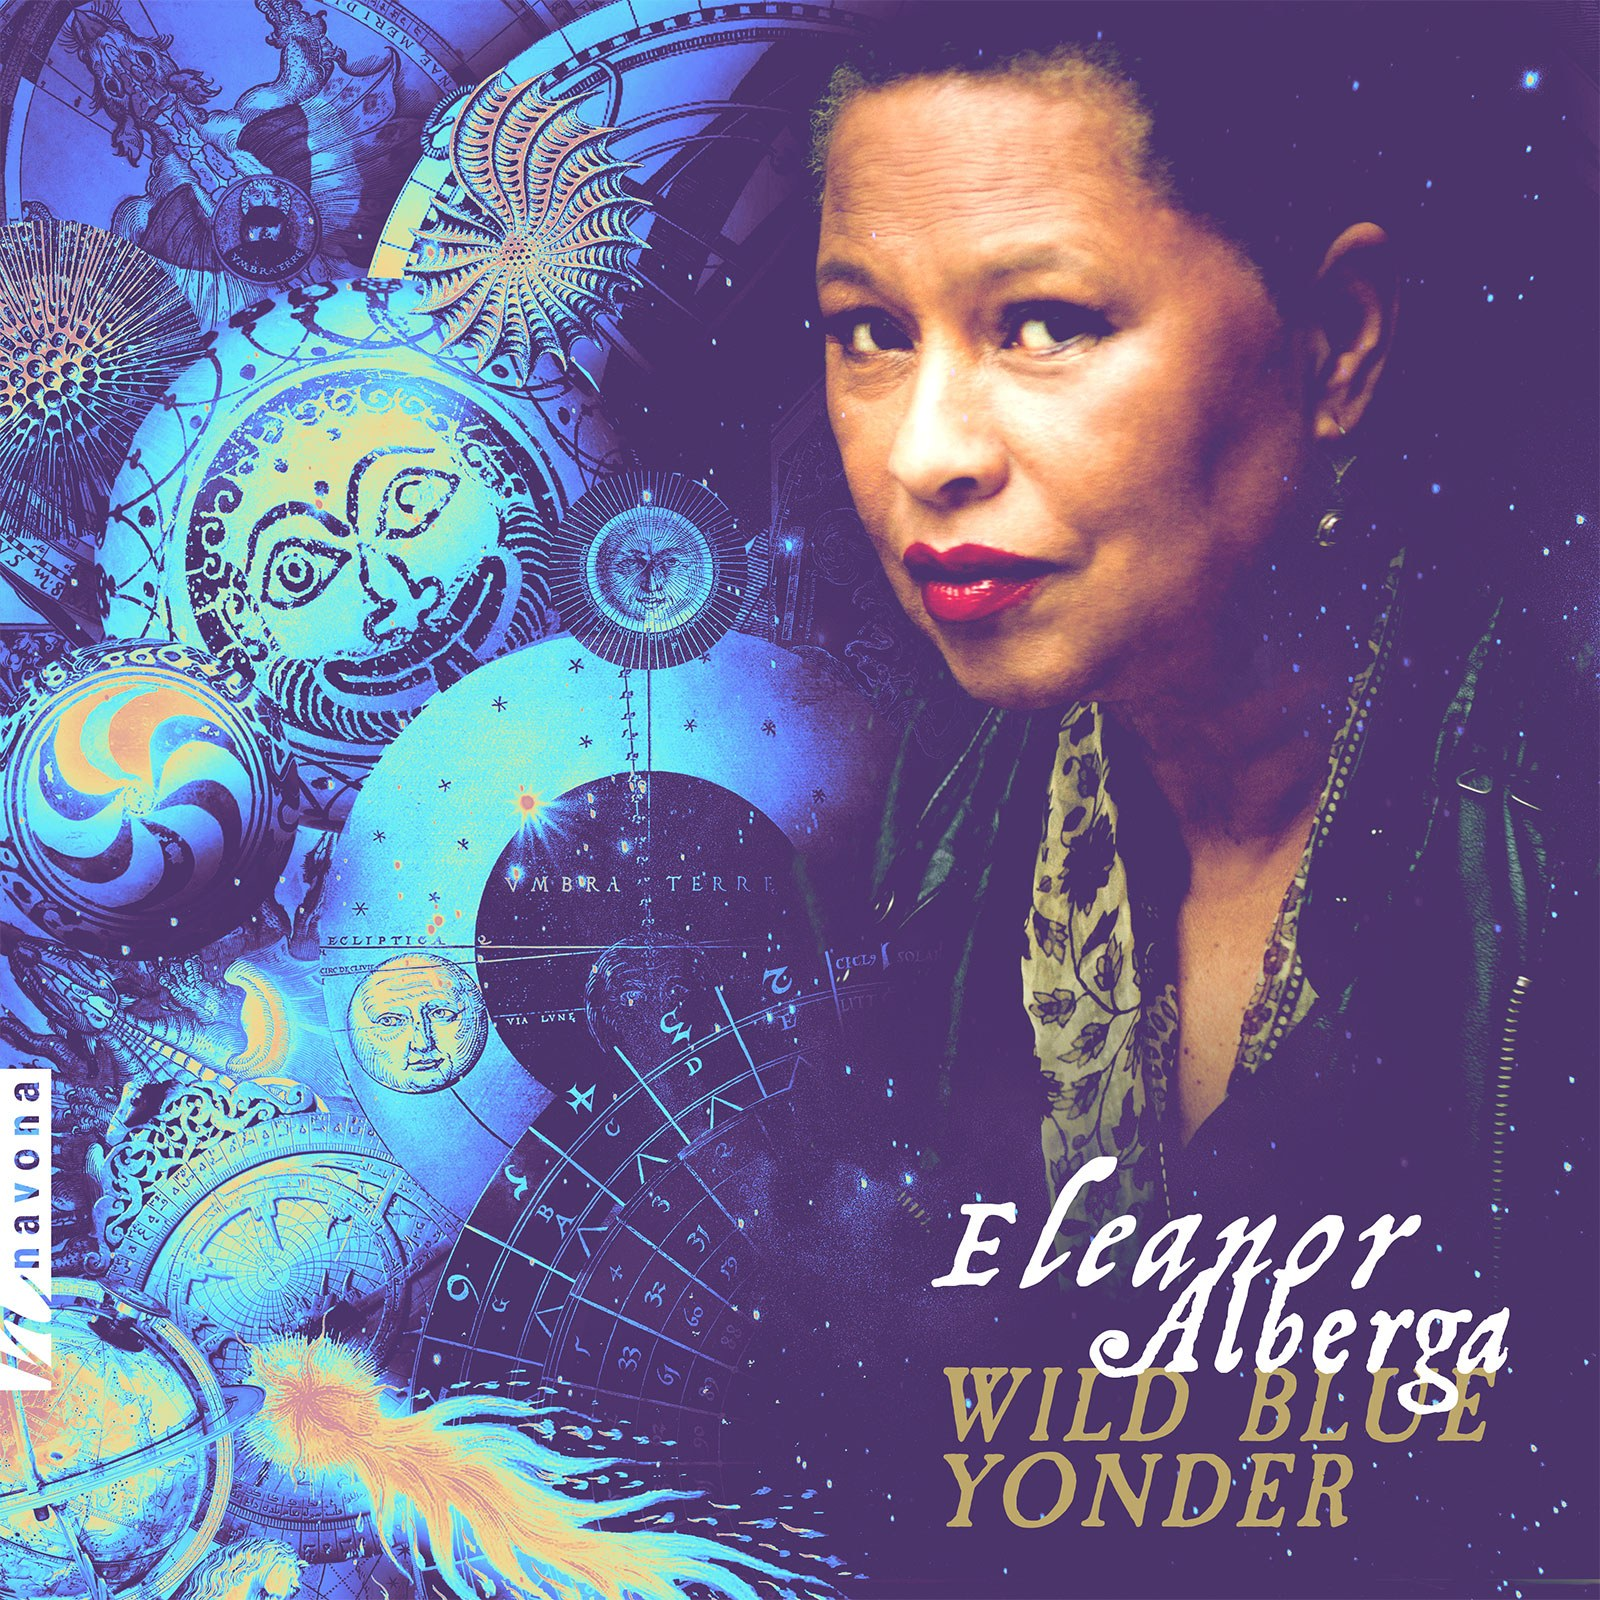 Wild Blue Yonder - Eleanor Alberga - Album Cover